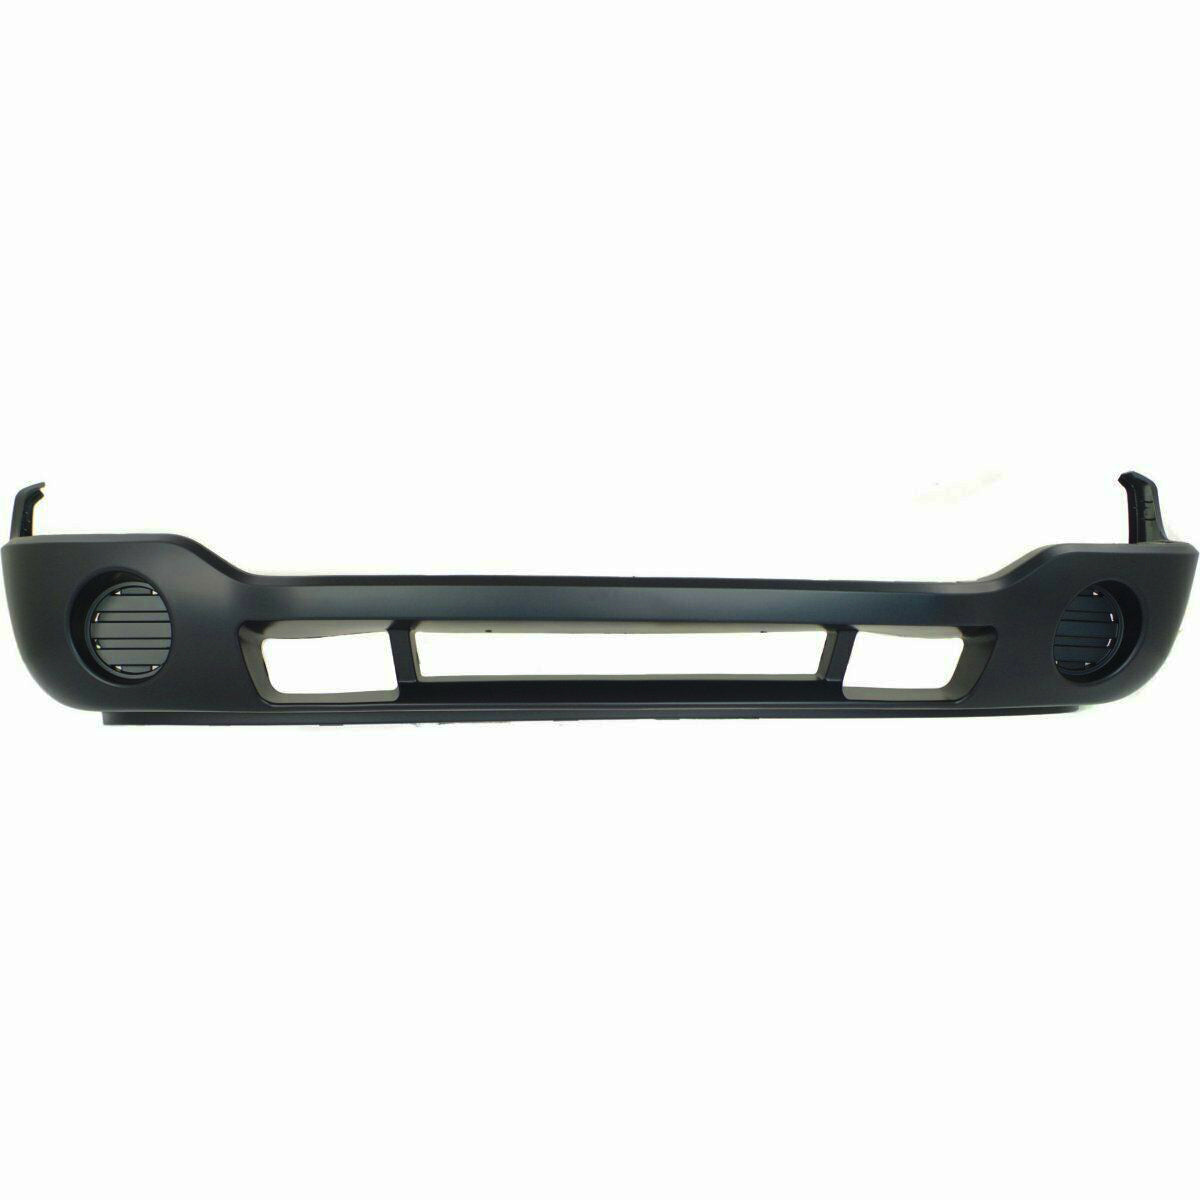 2003-2007 GMC Sierra (SLE | W/O Fog Light Cutouts) Front Lower Bumper